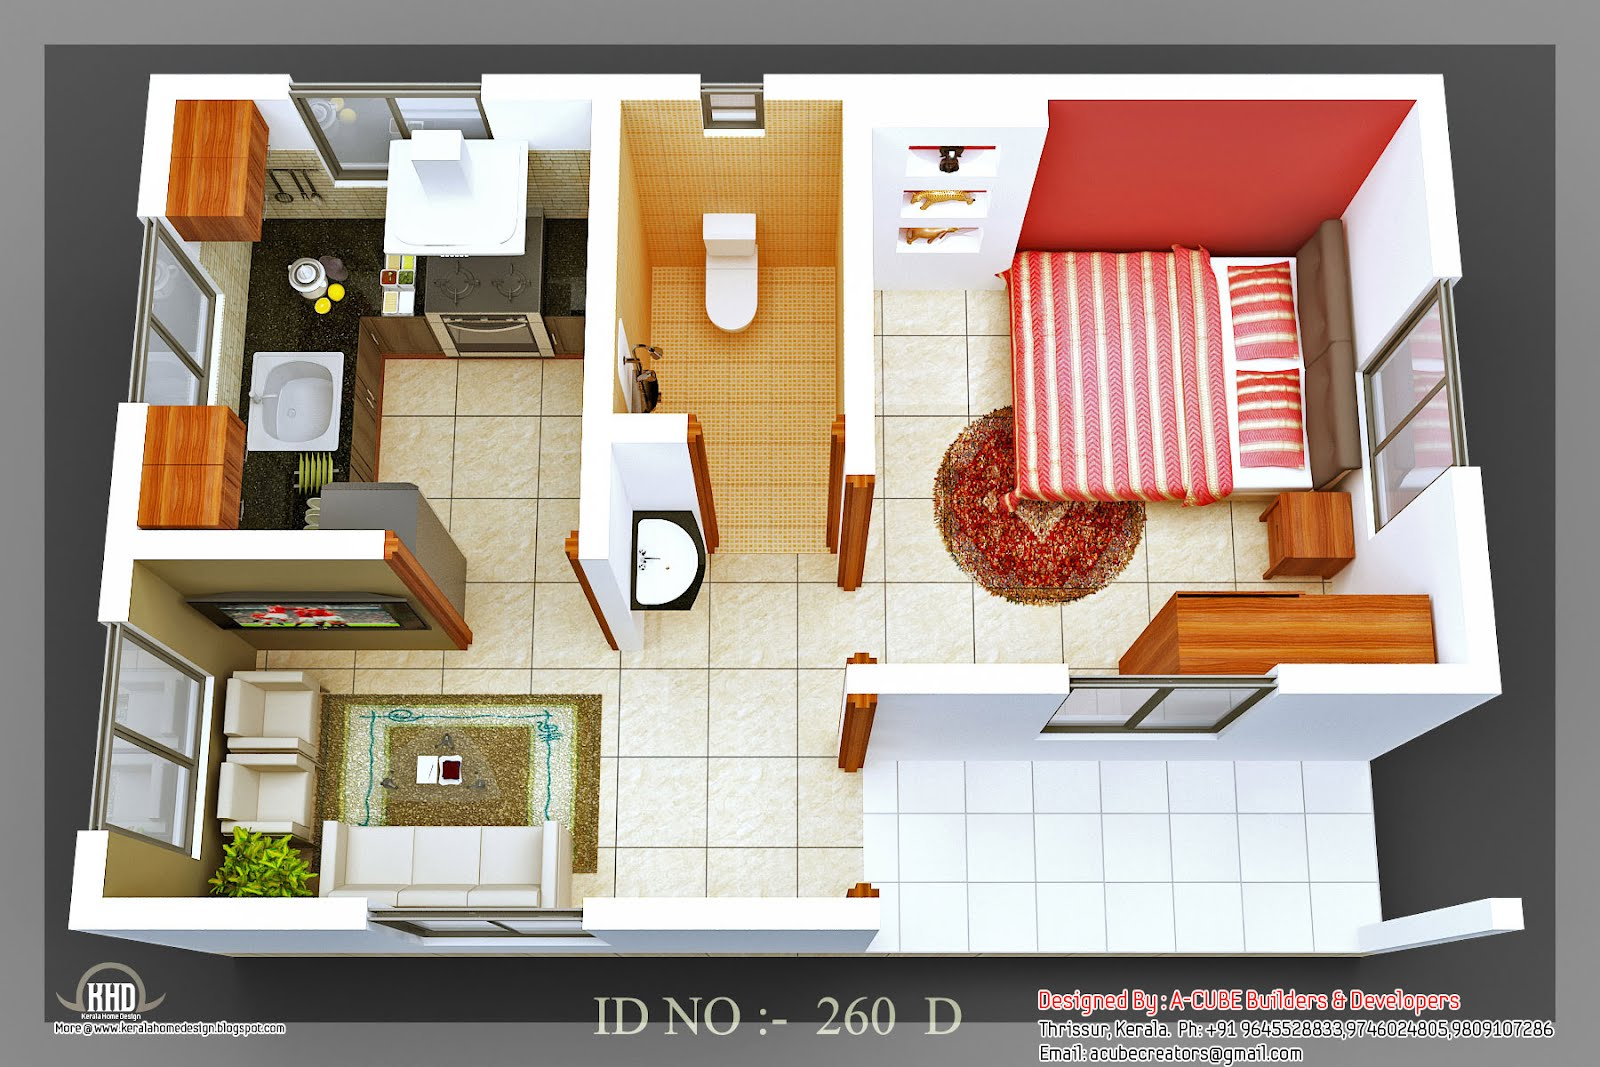 3d isometric views of small house plans kerala home design and floor plans Plan your house 3d